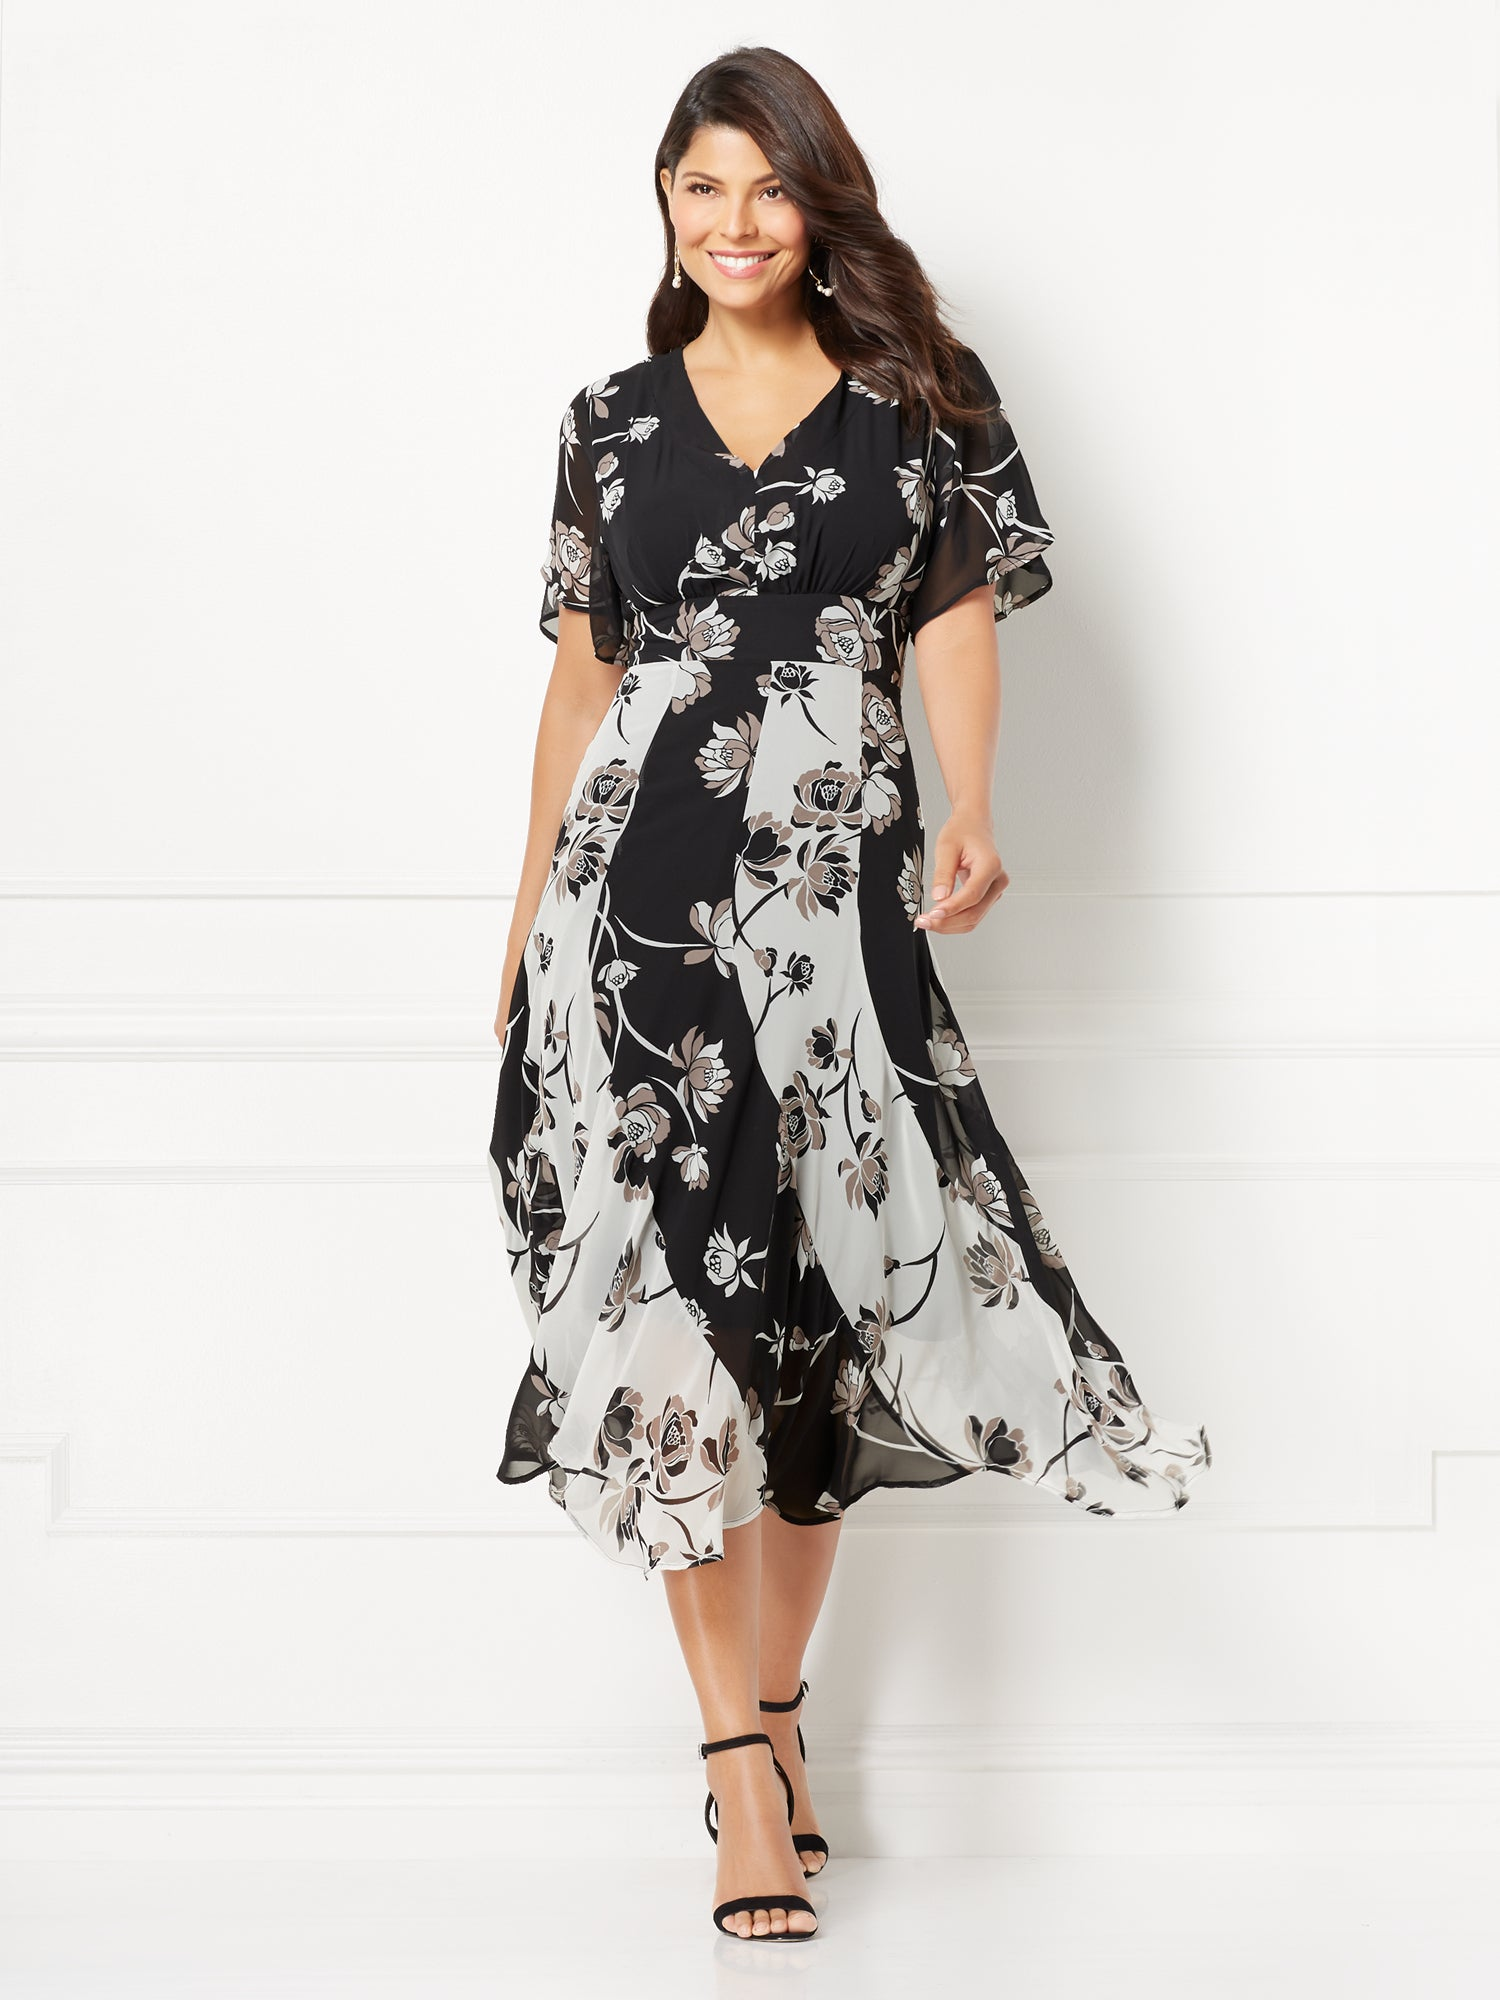 New York Company Eva Mendes Collection Sylvia Maxi Dress In